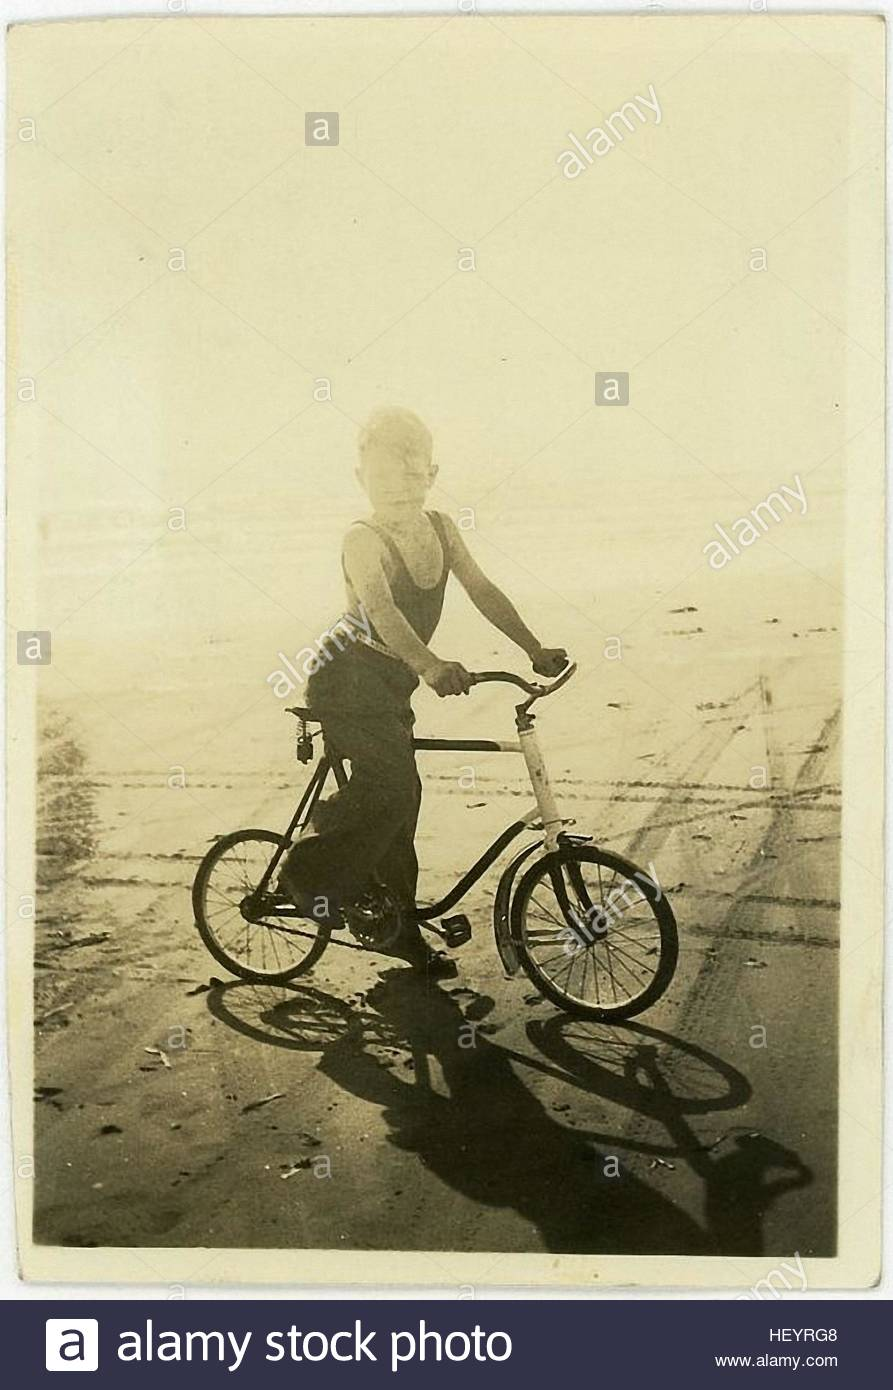 little boy on the bicycle in the vintage photography from the 30s - Stock Image